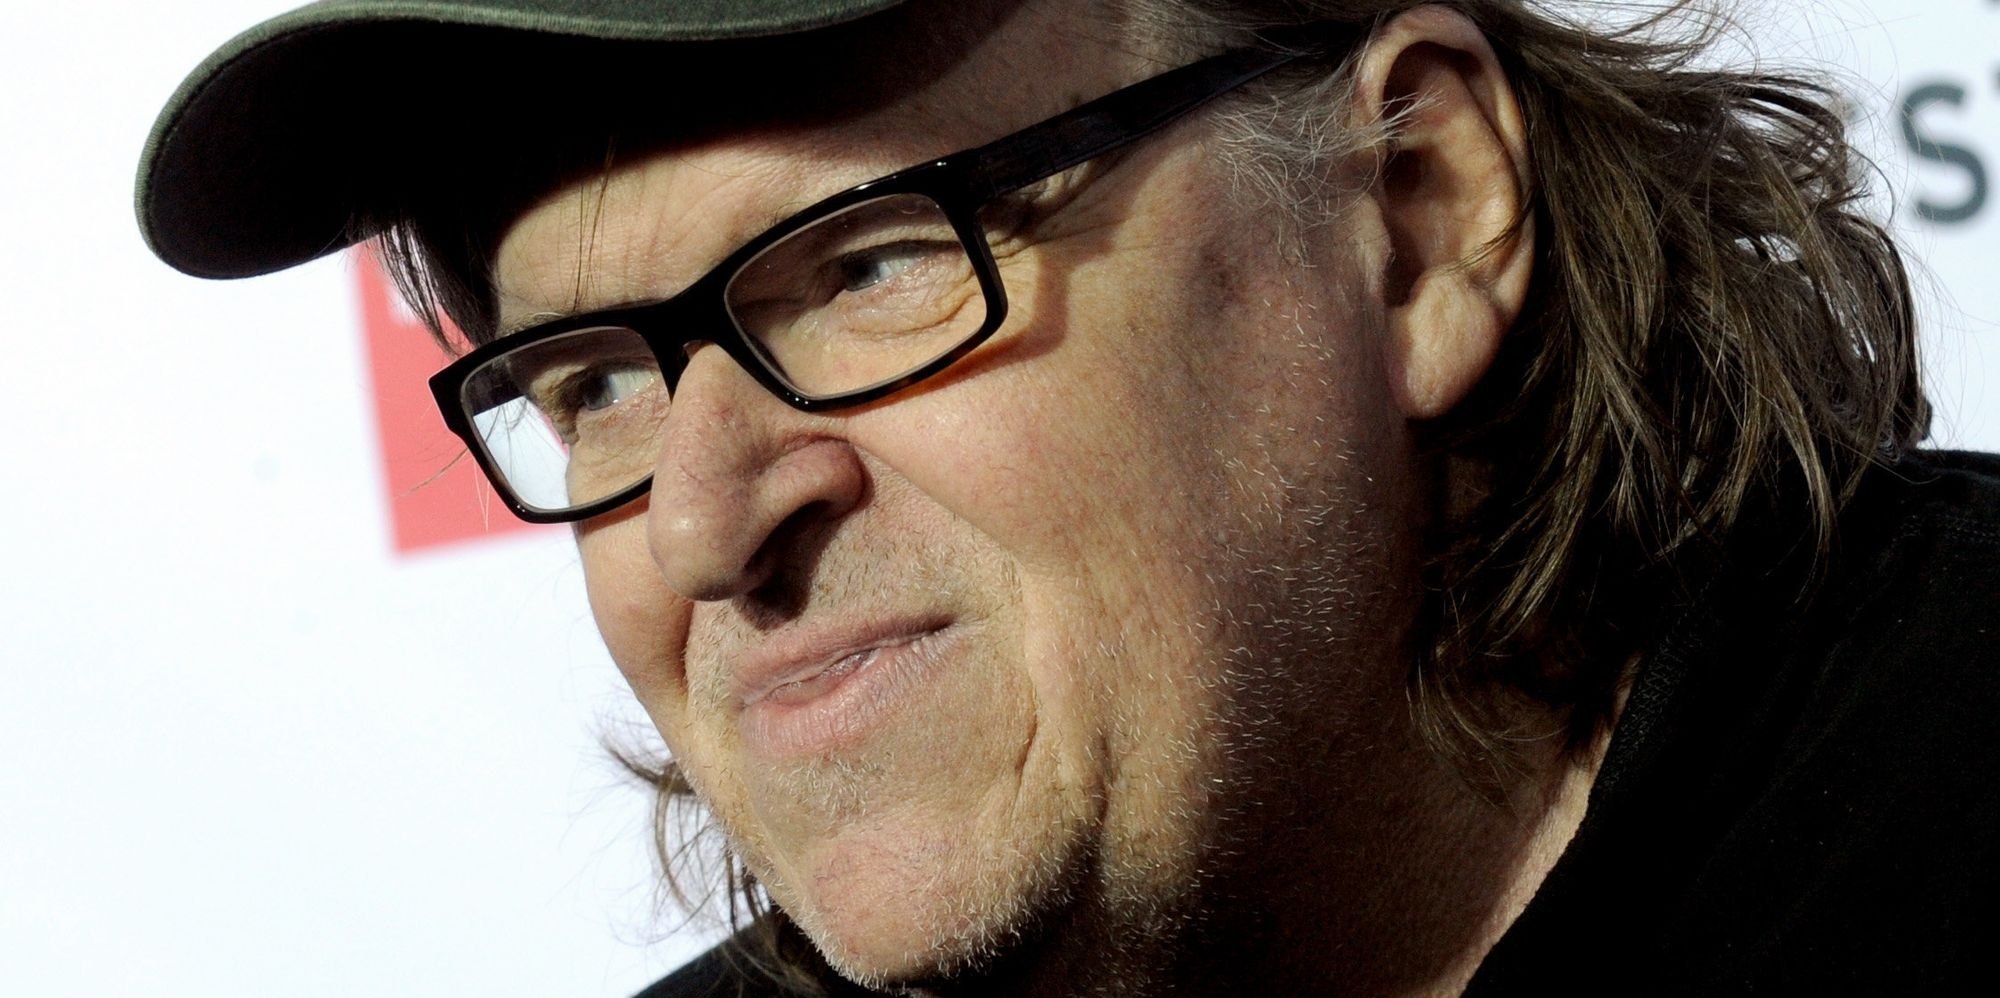 Michael Moore Calls Flint Water Crisis A 'Hate Crime' Based On GOP's 'Race Hatred'